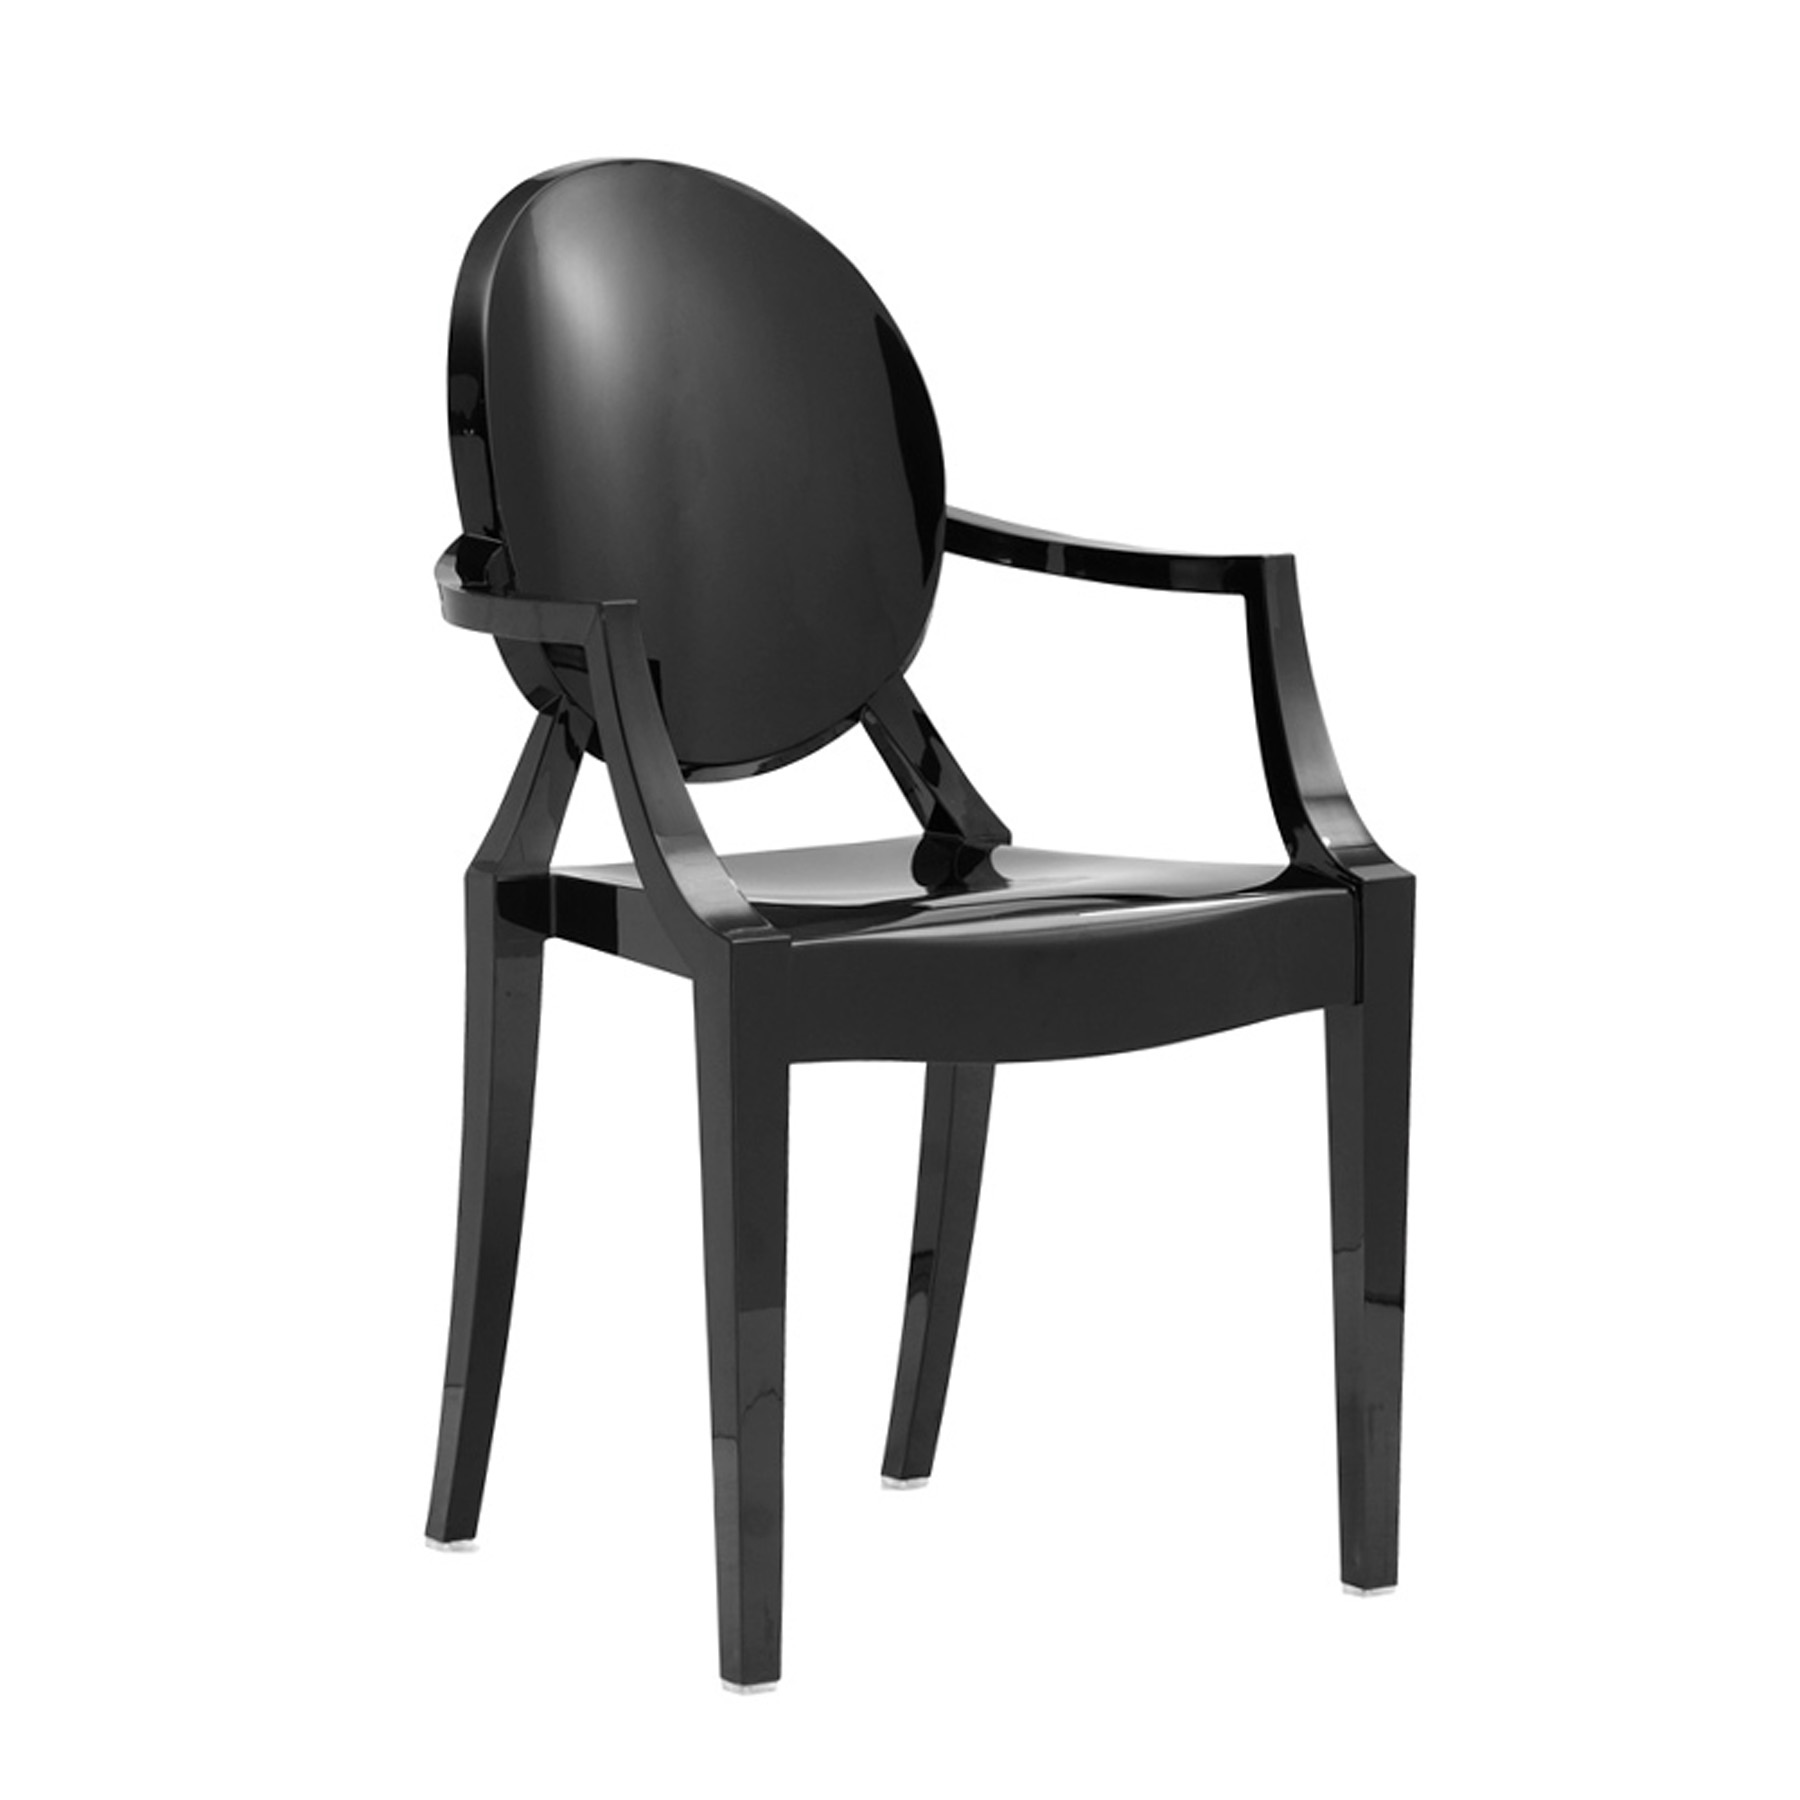 ghost chair stool booster seat for dining kmart